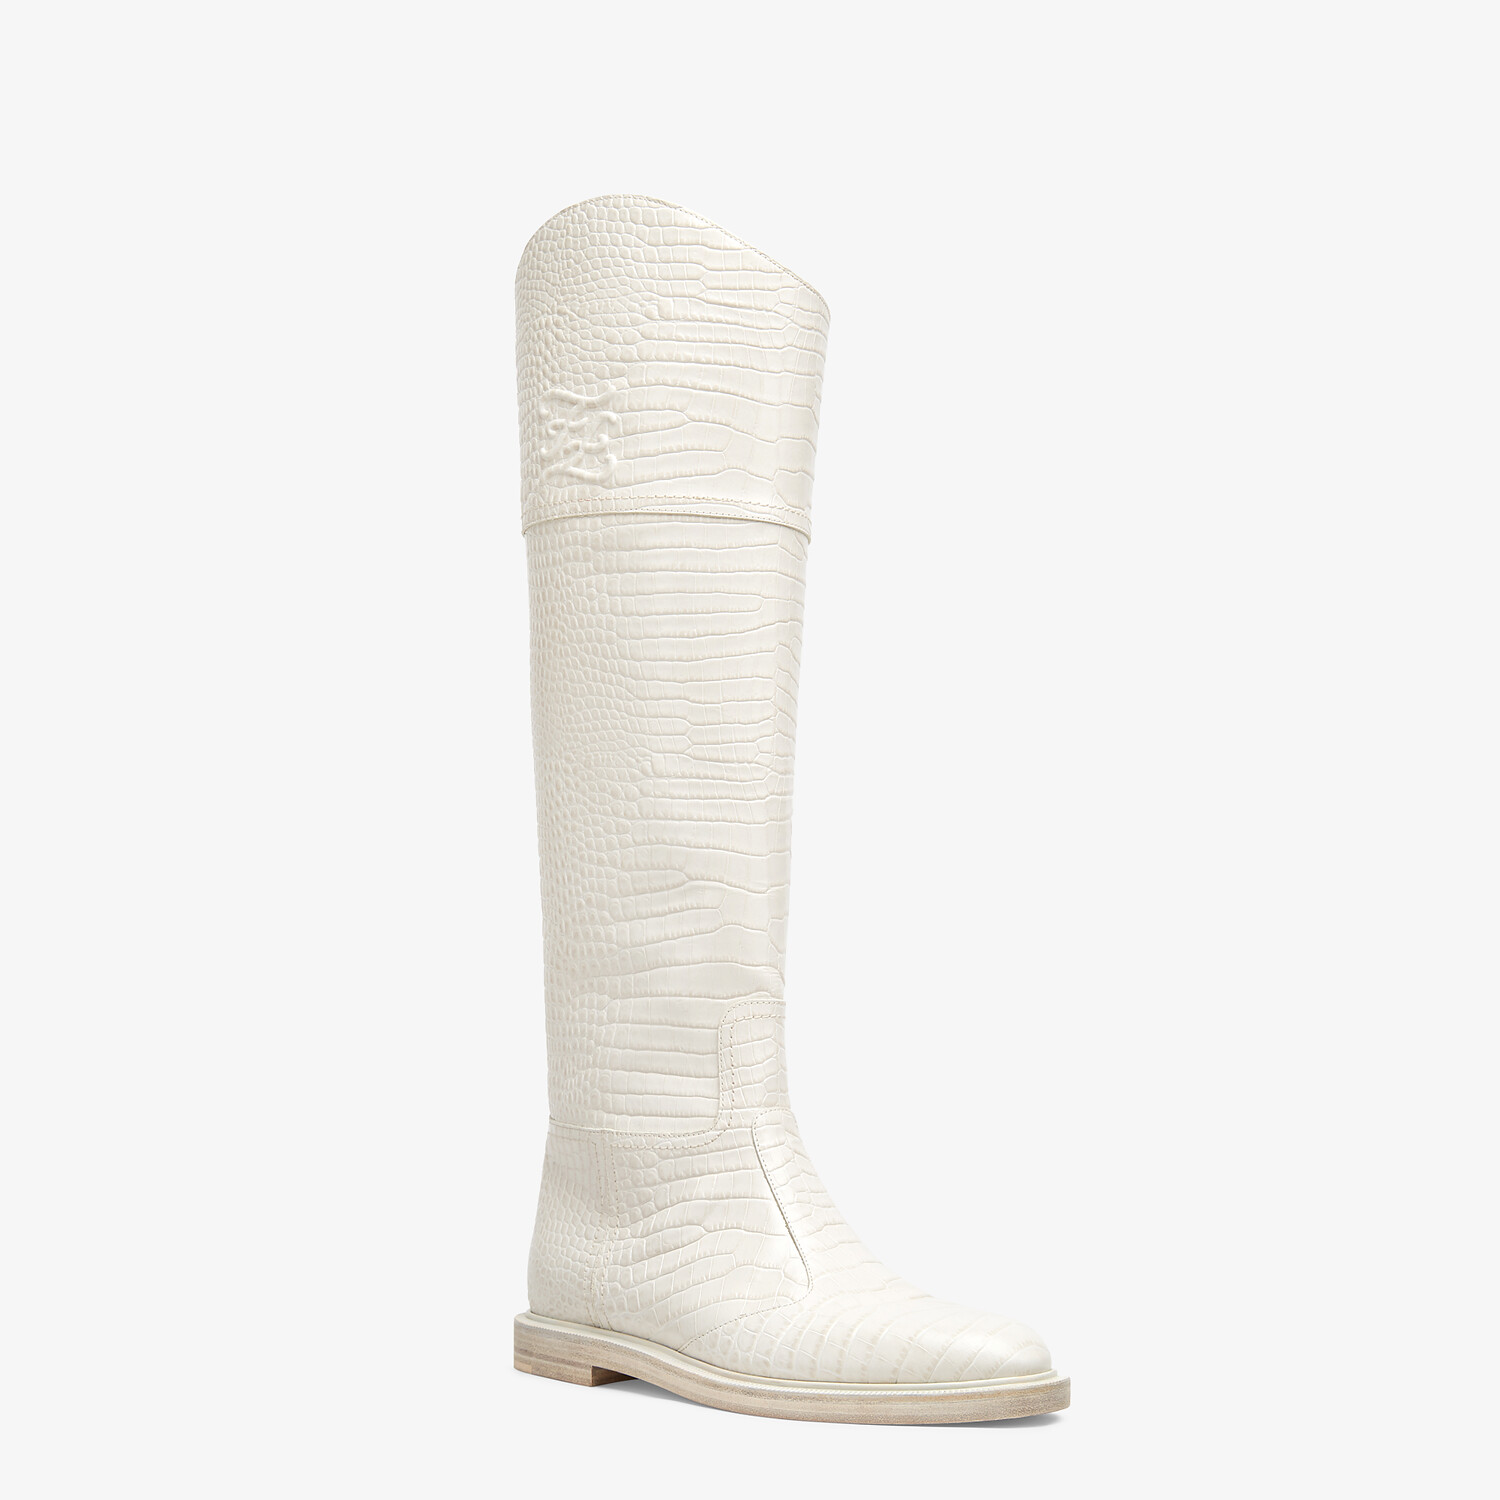 FENDI KARLIGRAPHY - White leather boots - view 2 detail